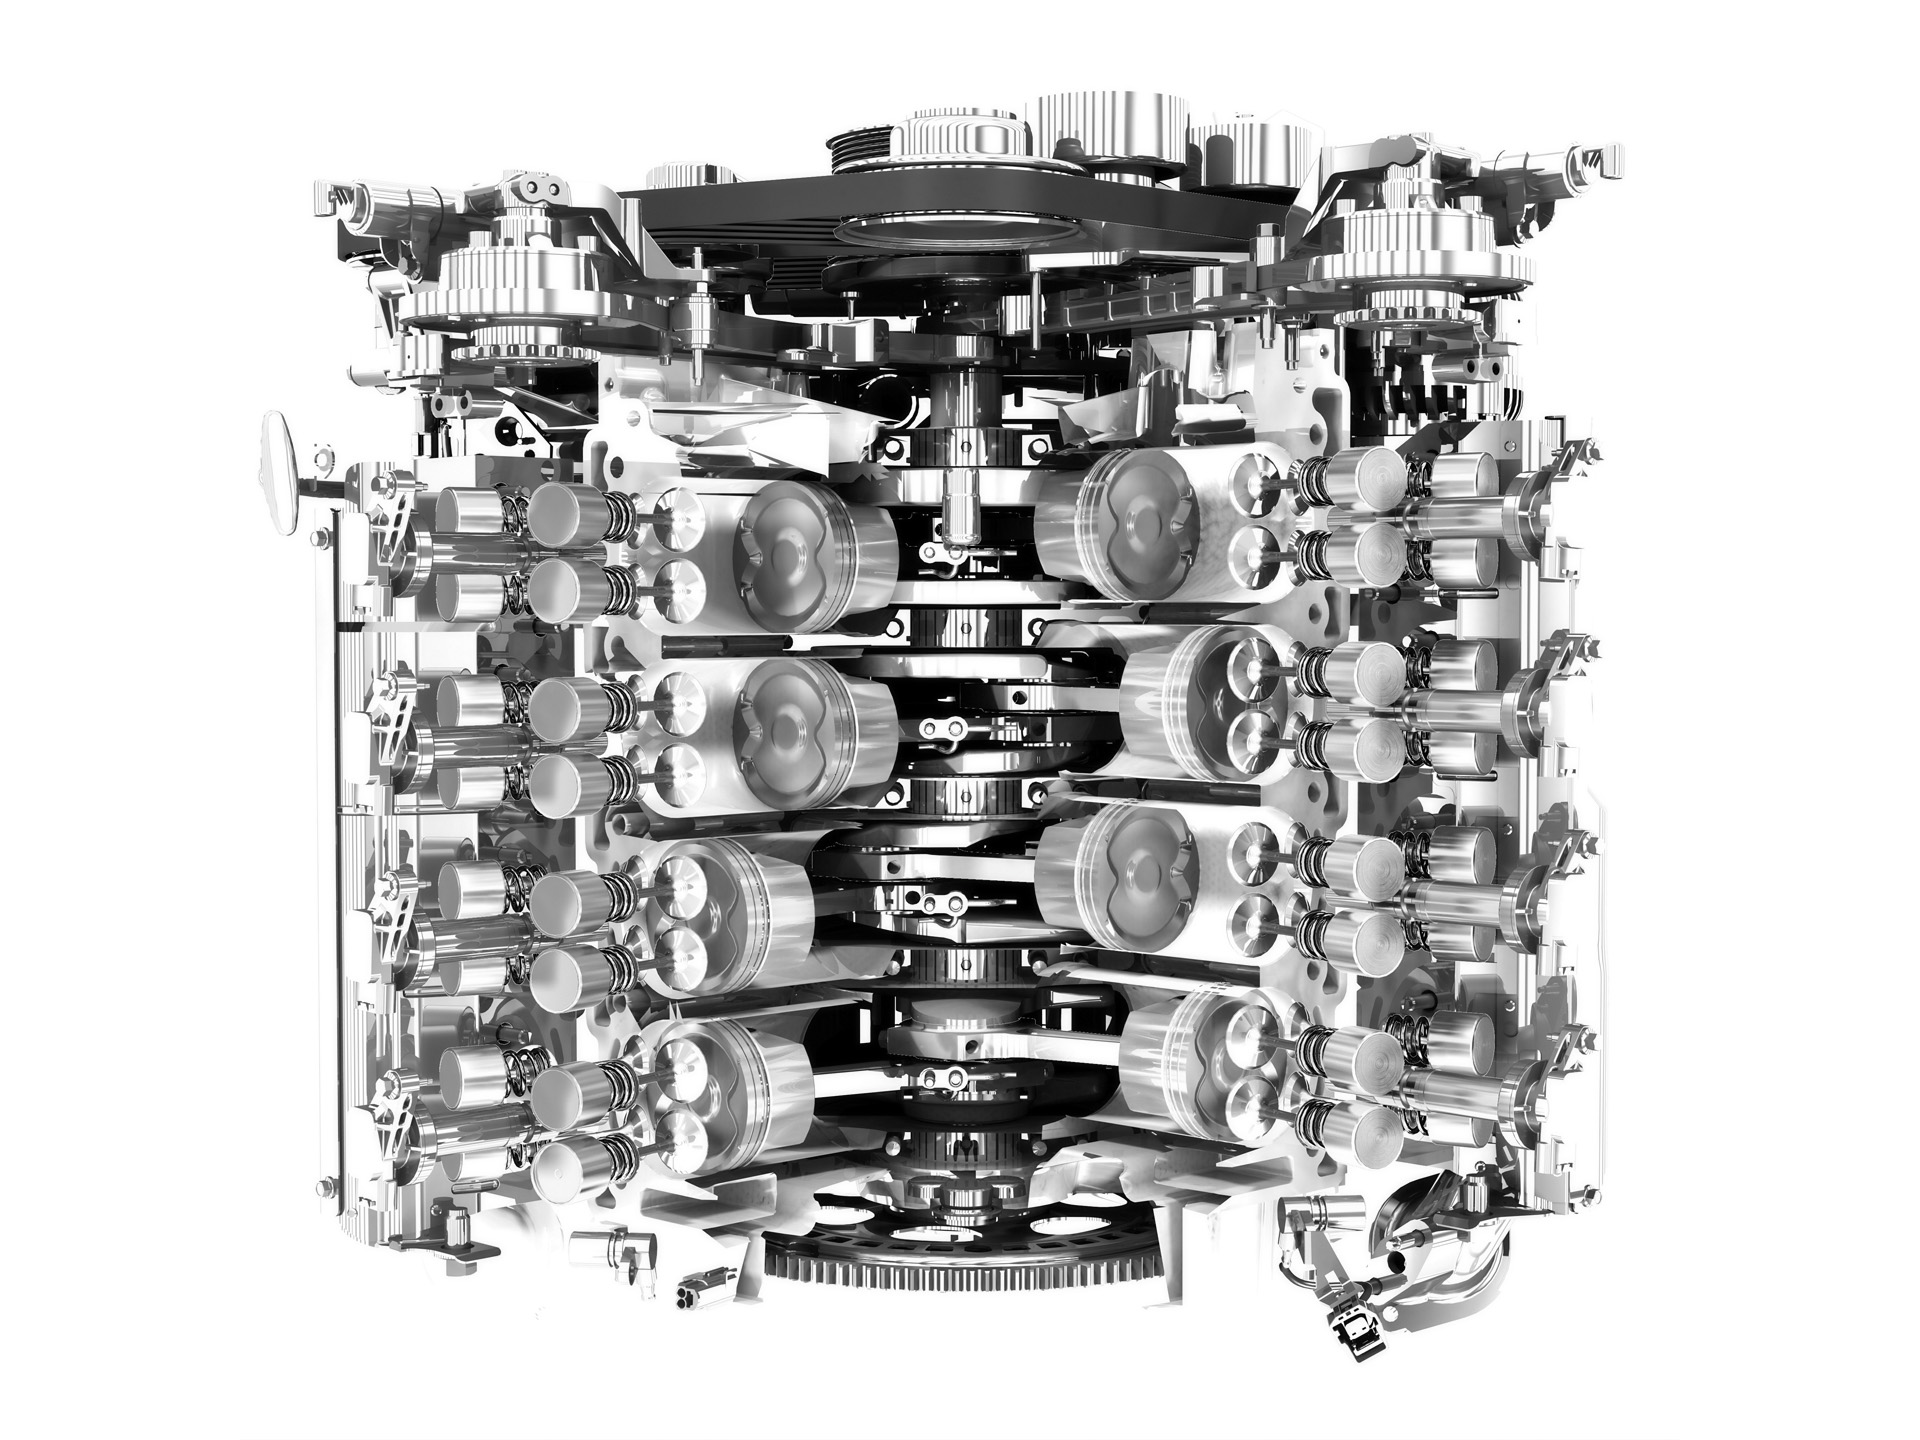 Sample P1232 Engine